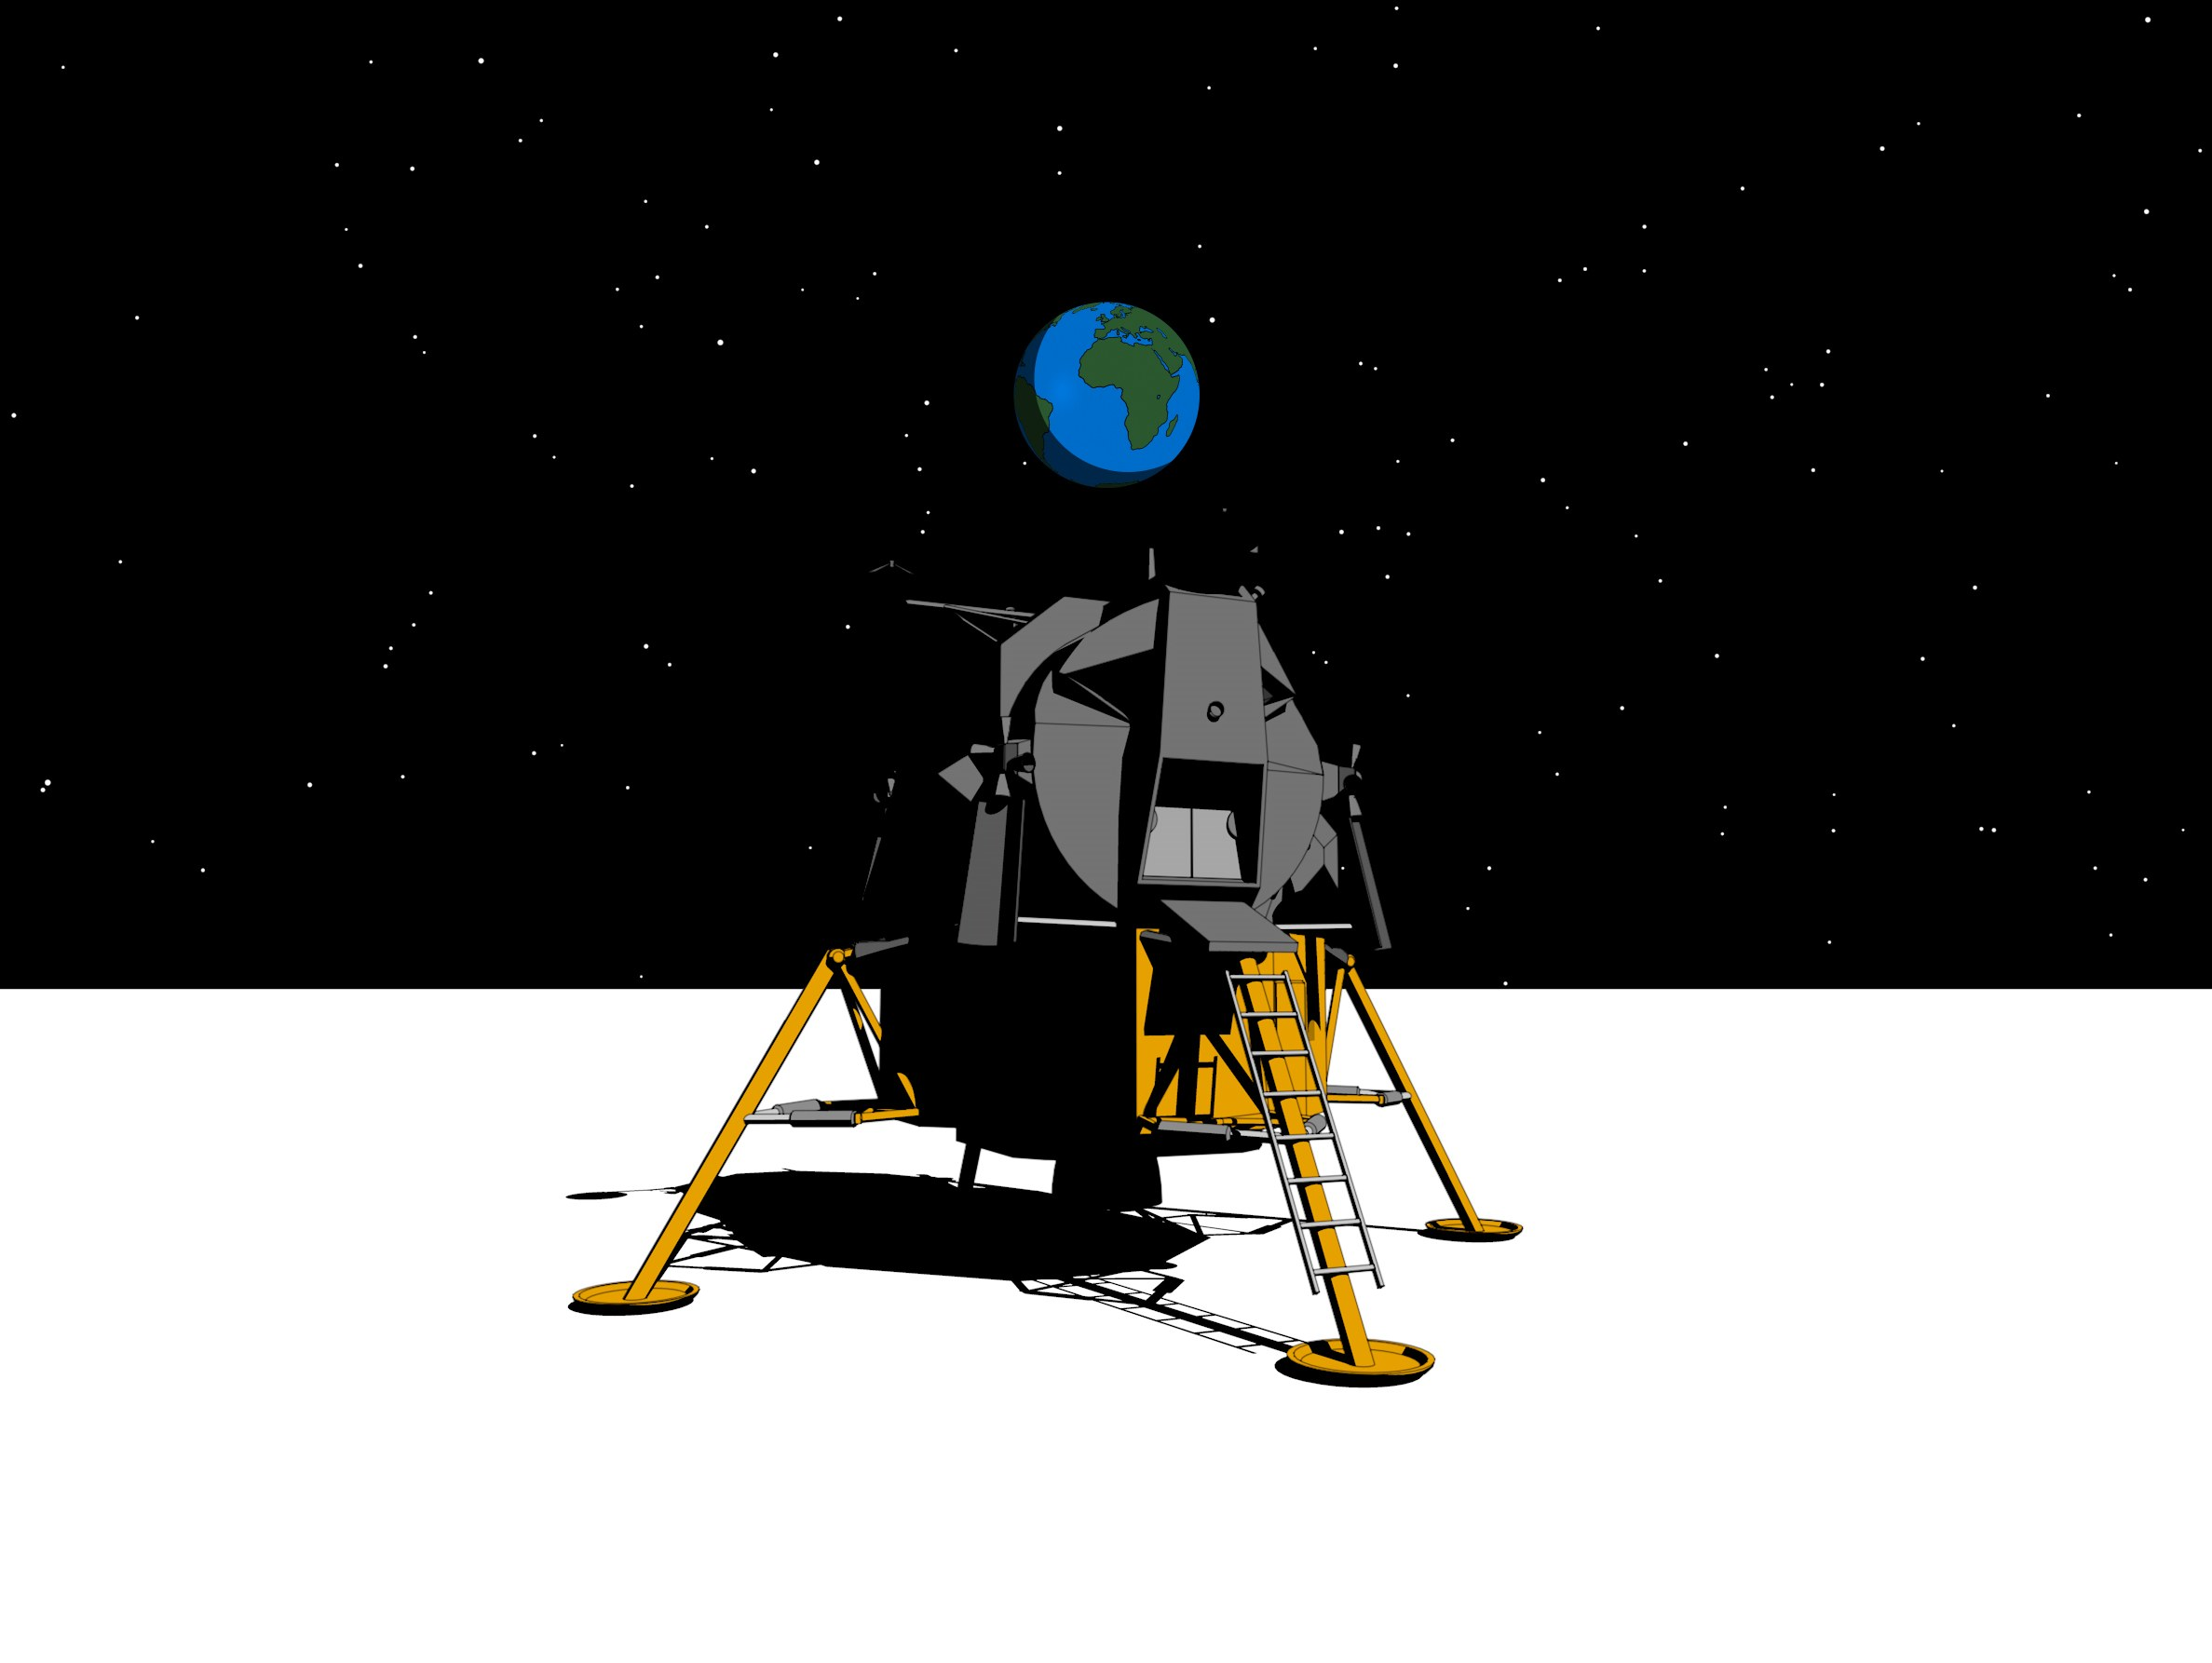 Clipart rocket moon rock. The beauty and madness